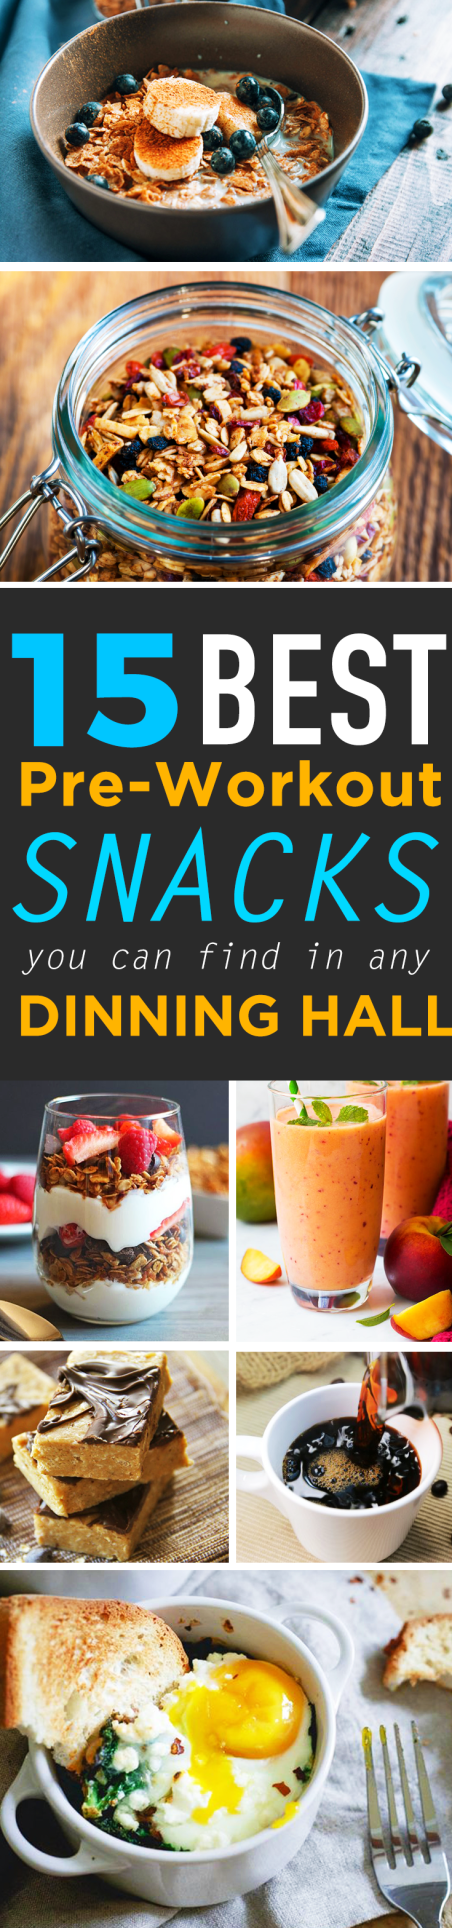 15 best pre-workout snacks you can find in any dinning hall